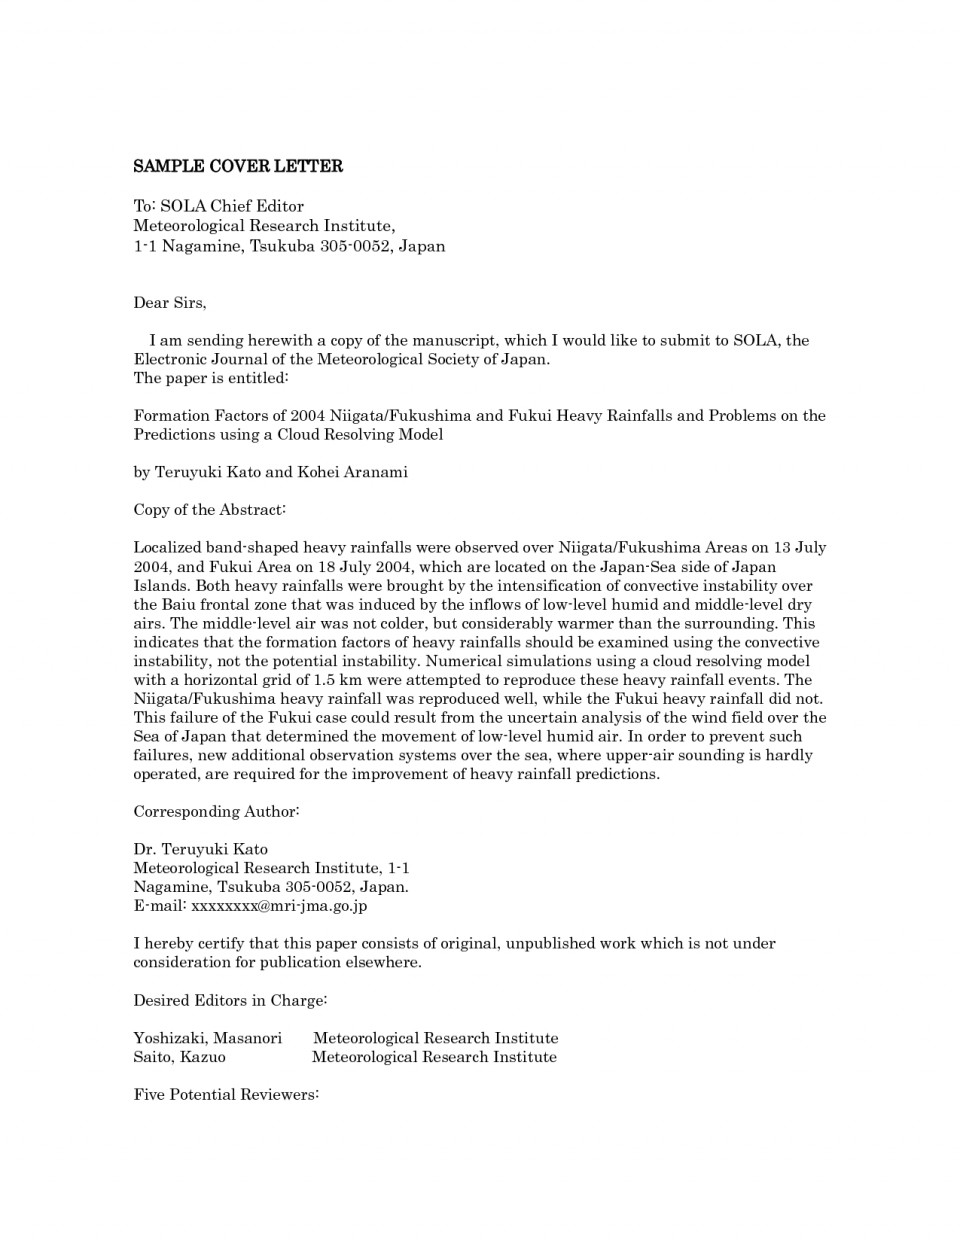 014 Research Paper Editor Cover Letter ~ Museumlegs